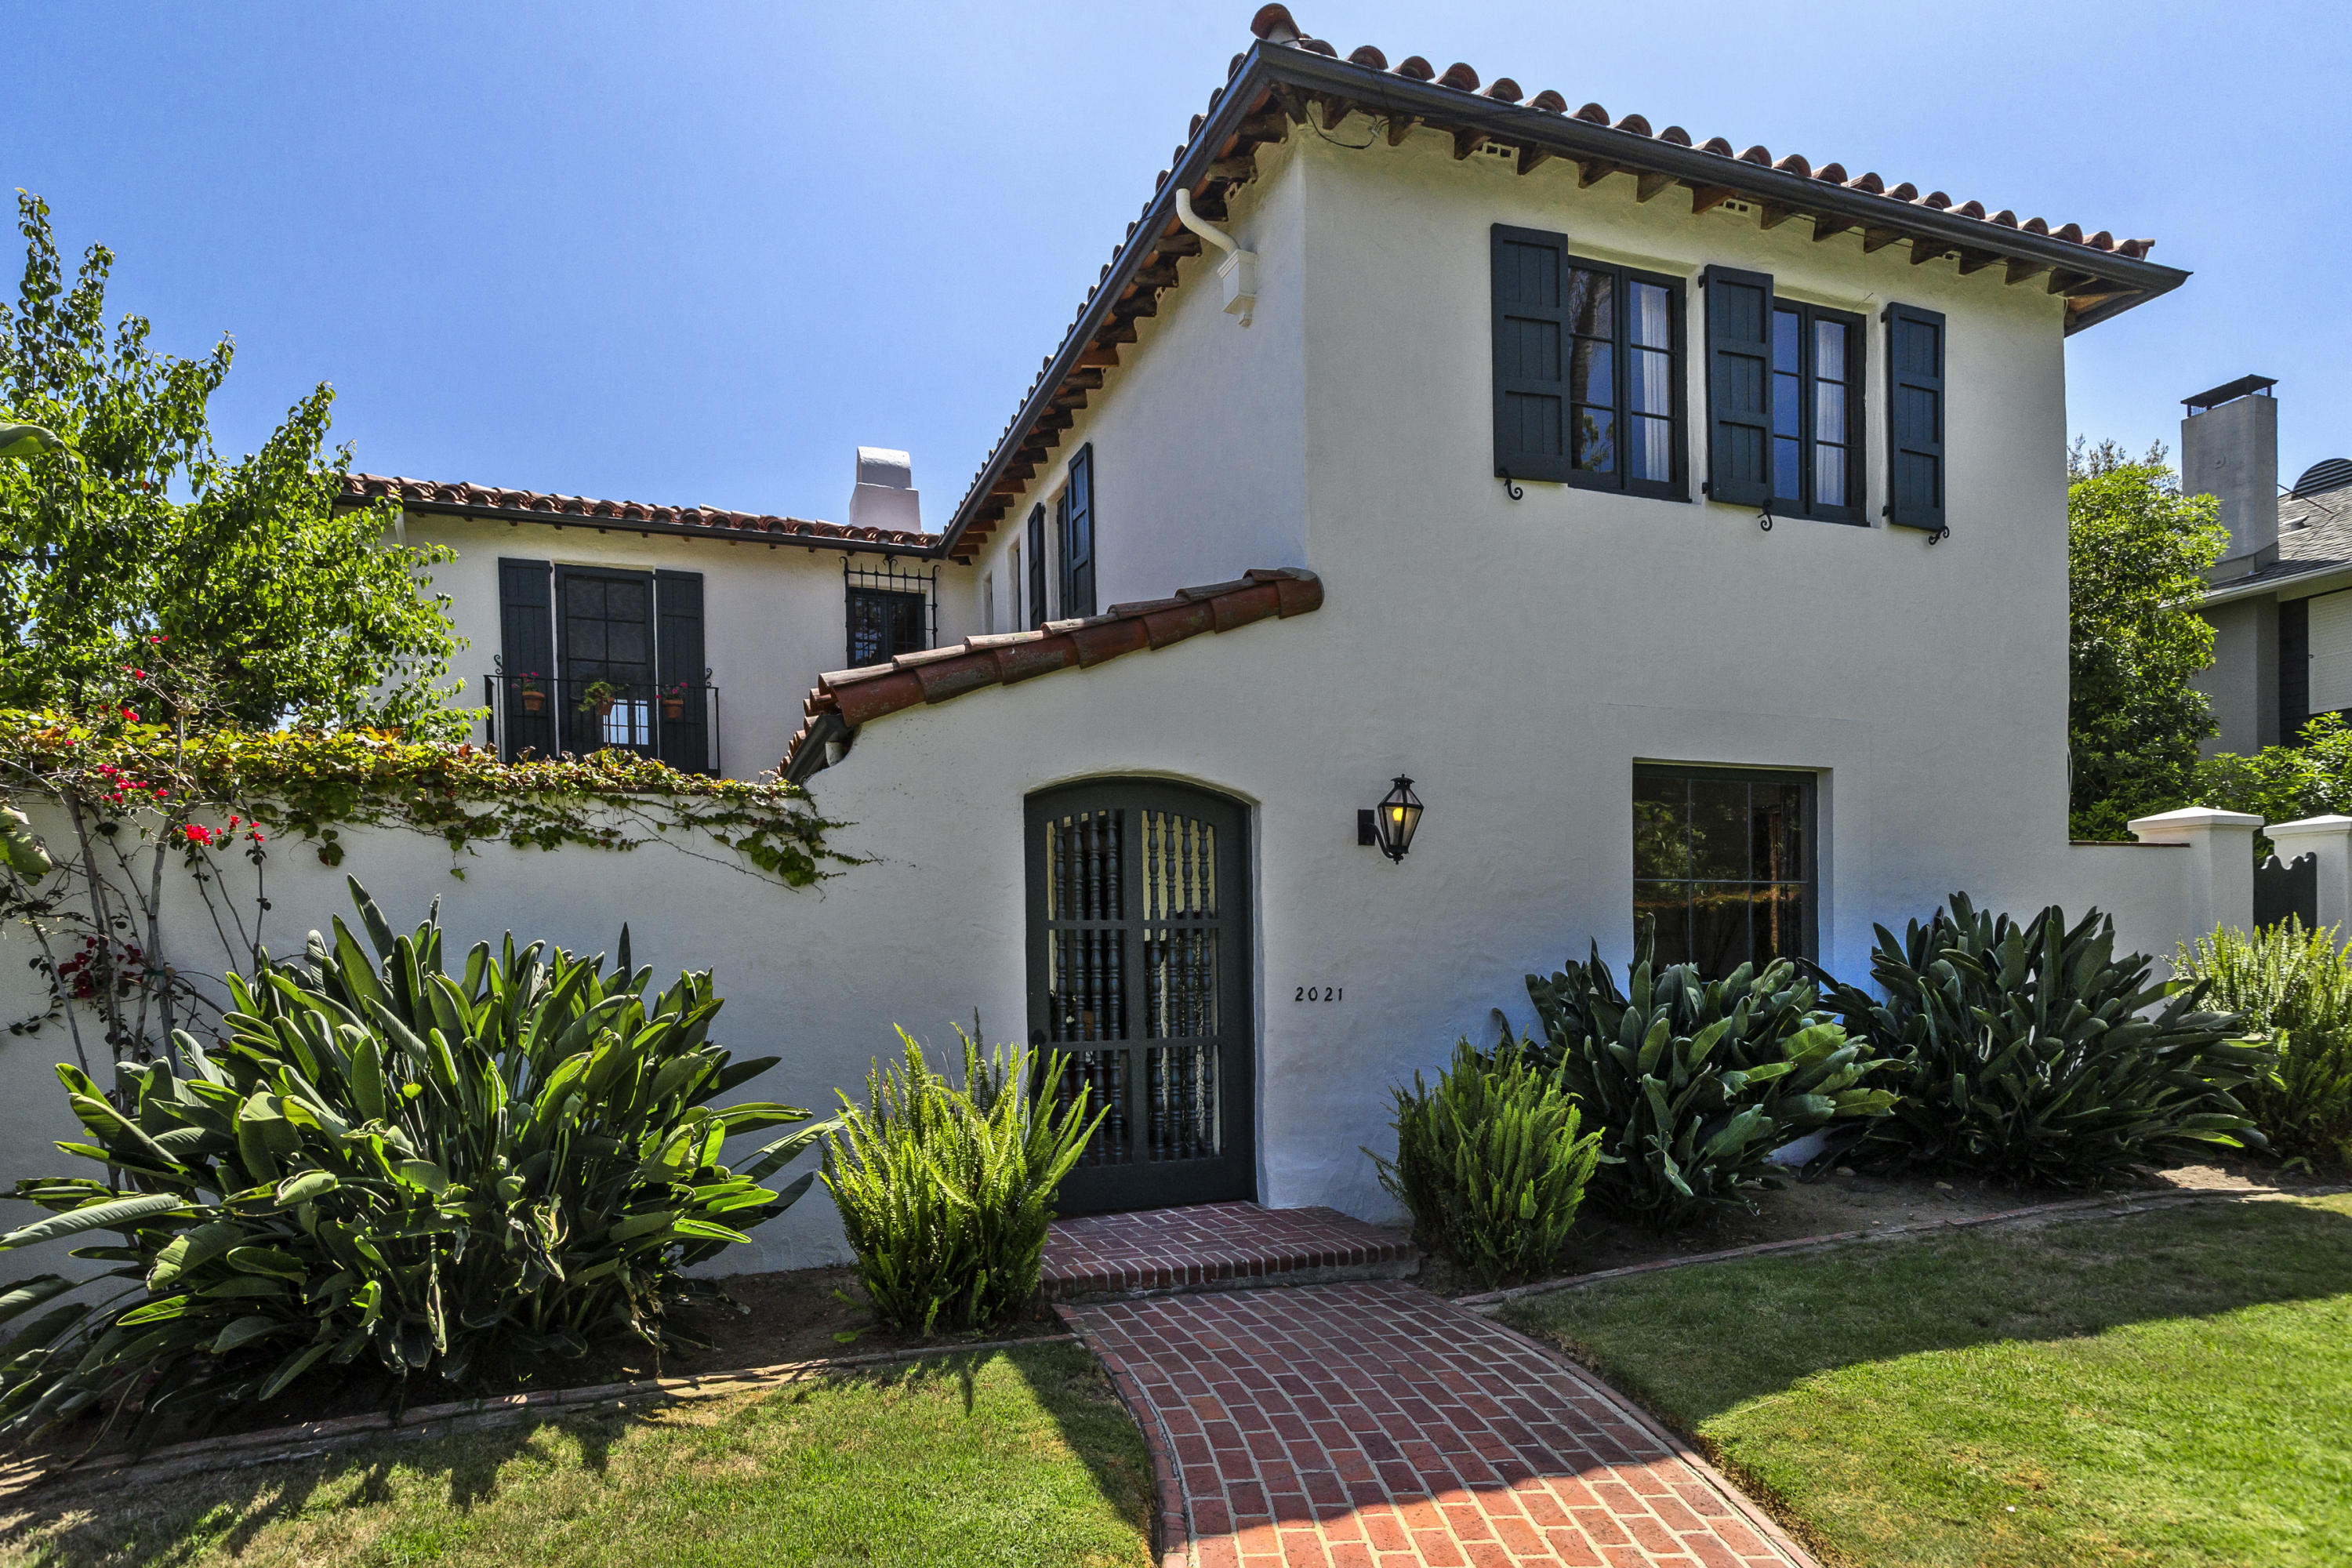 Property photo for 2021 Santa Barbara St Santa Barbara, California 93105 - 16-2527